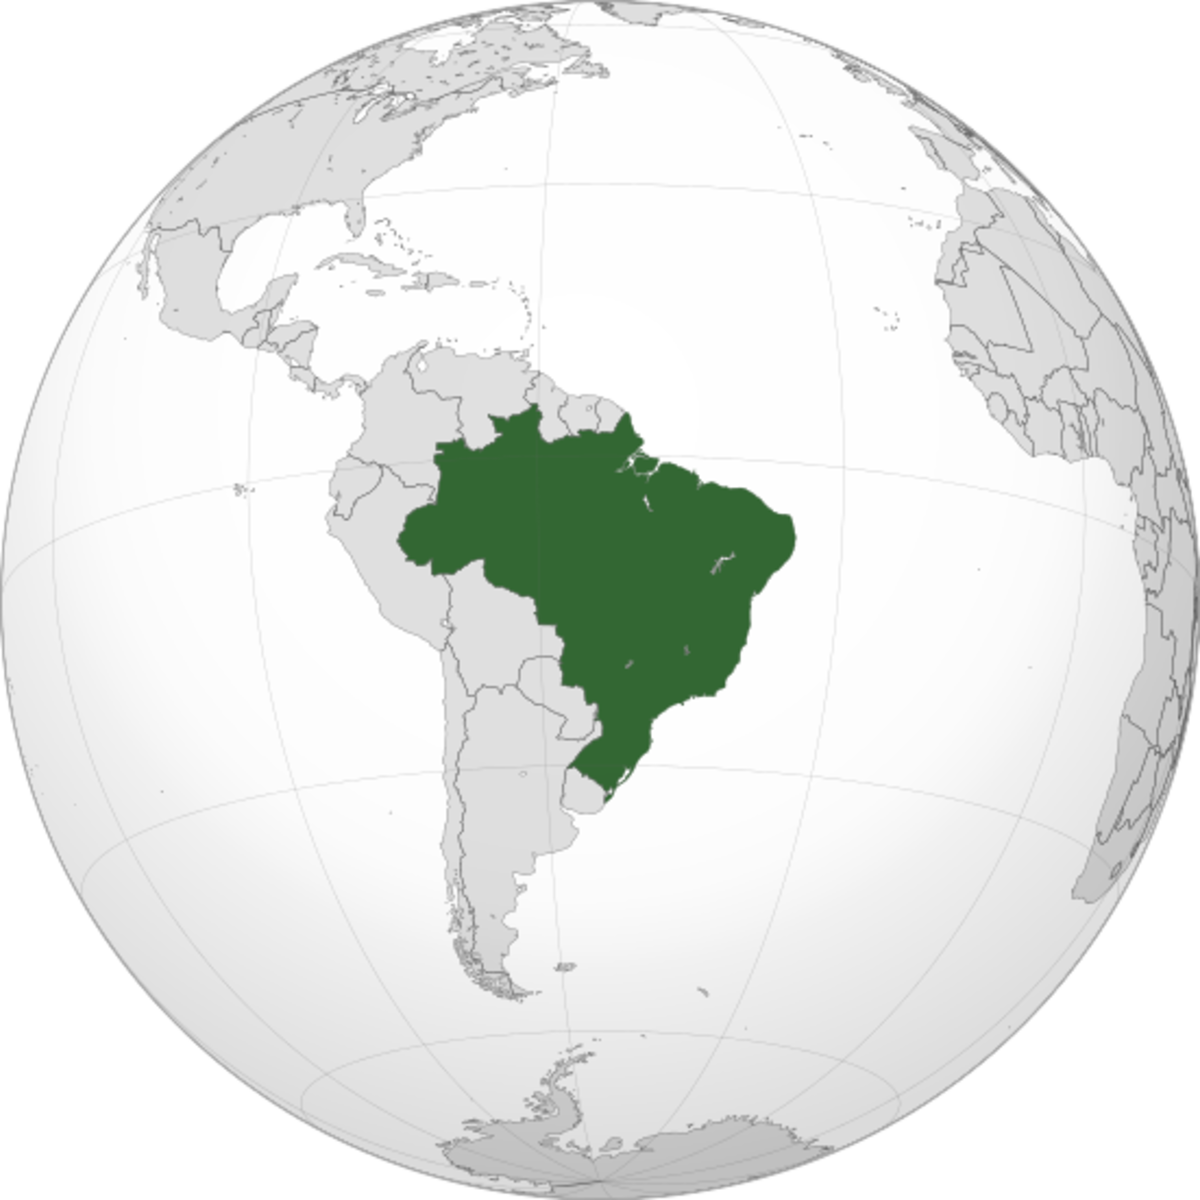 Map showing Brazil's location